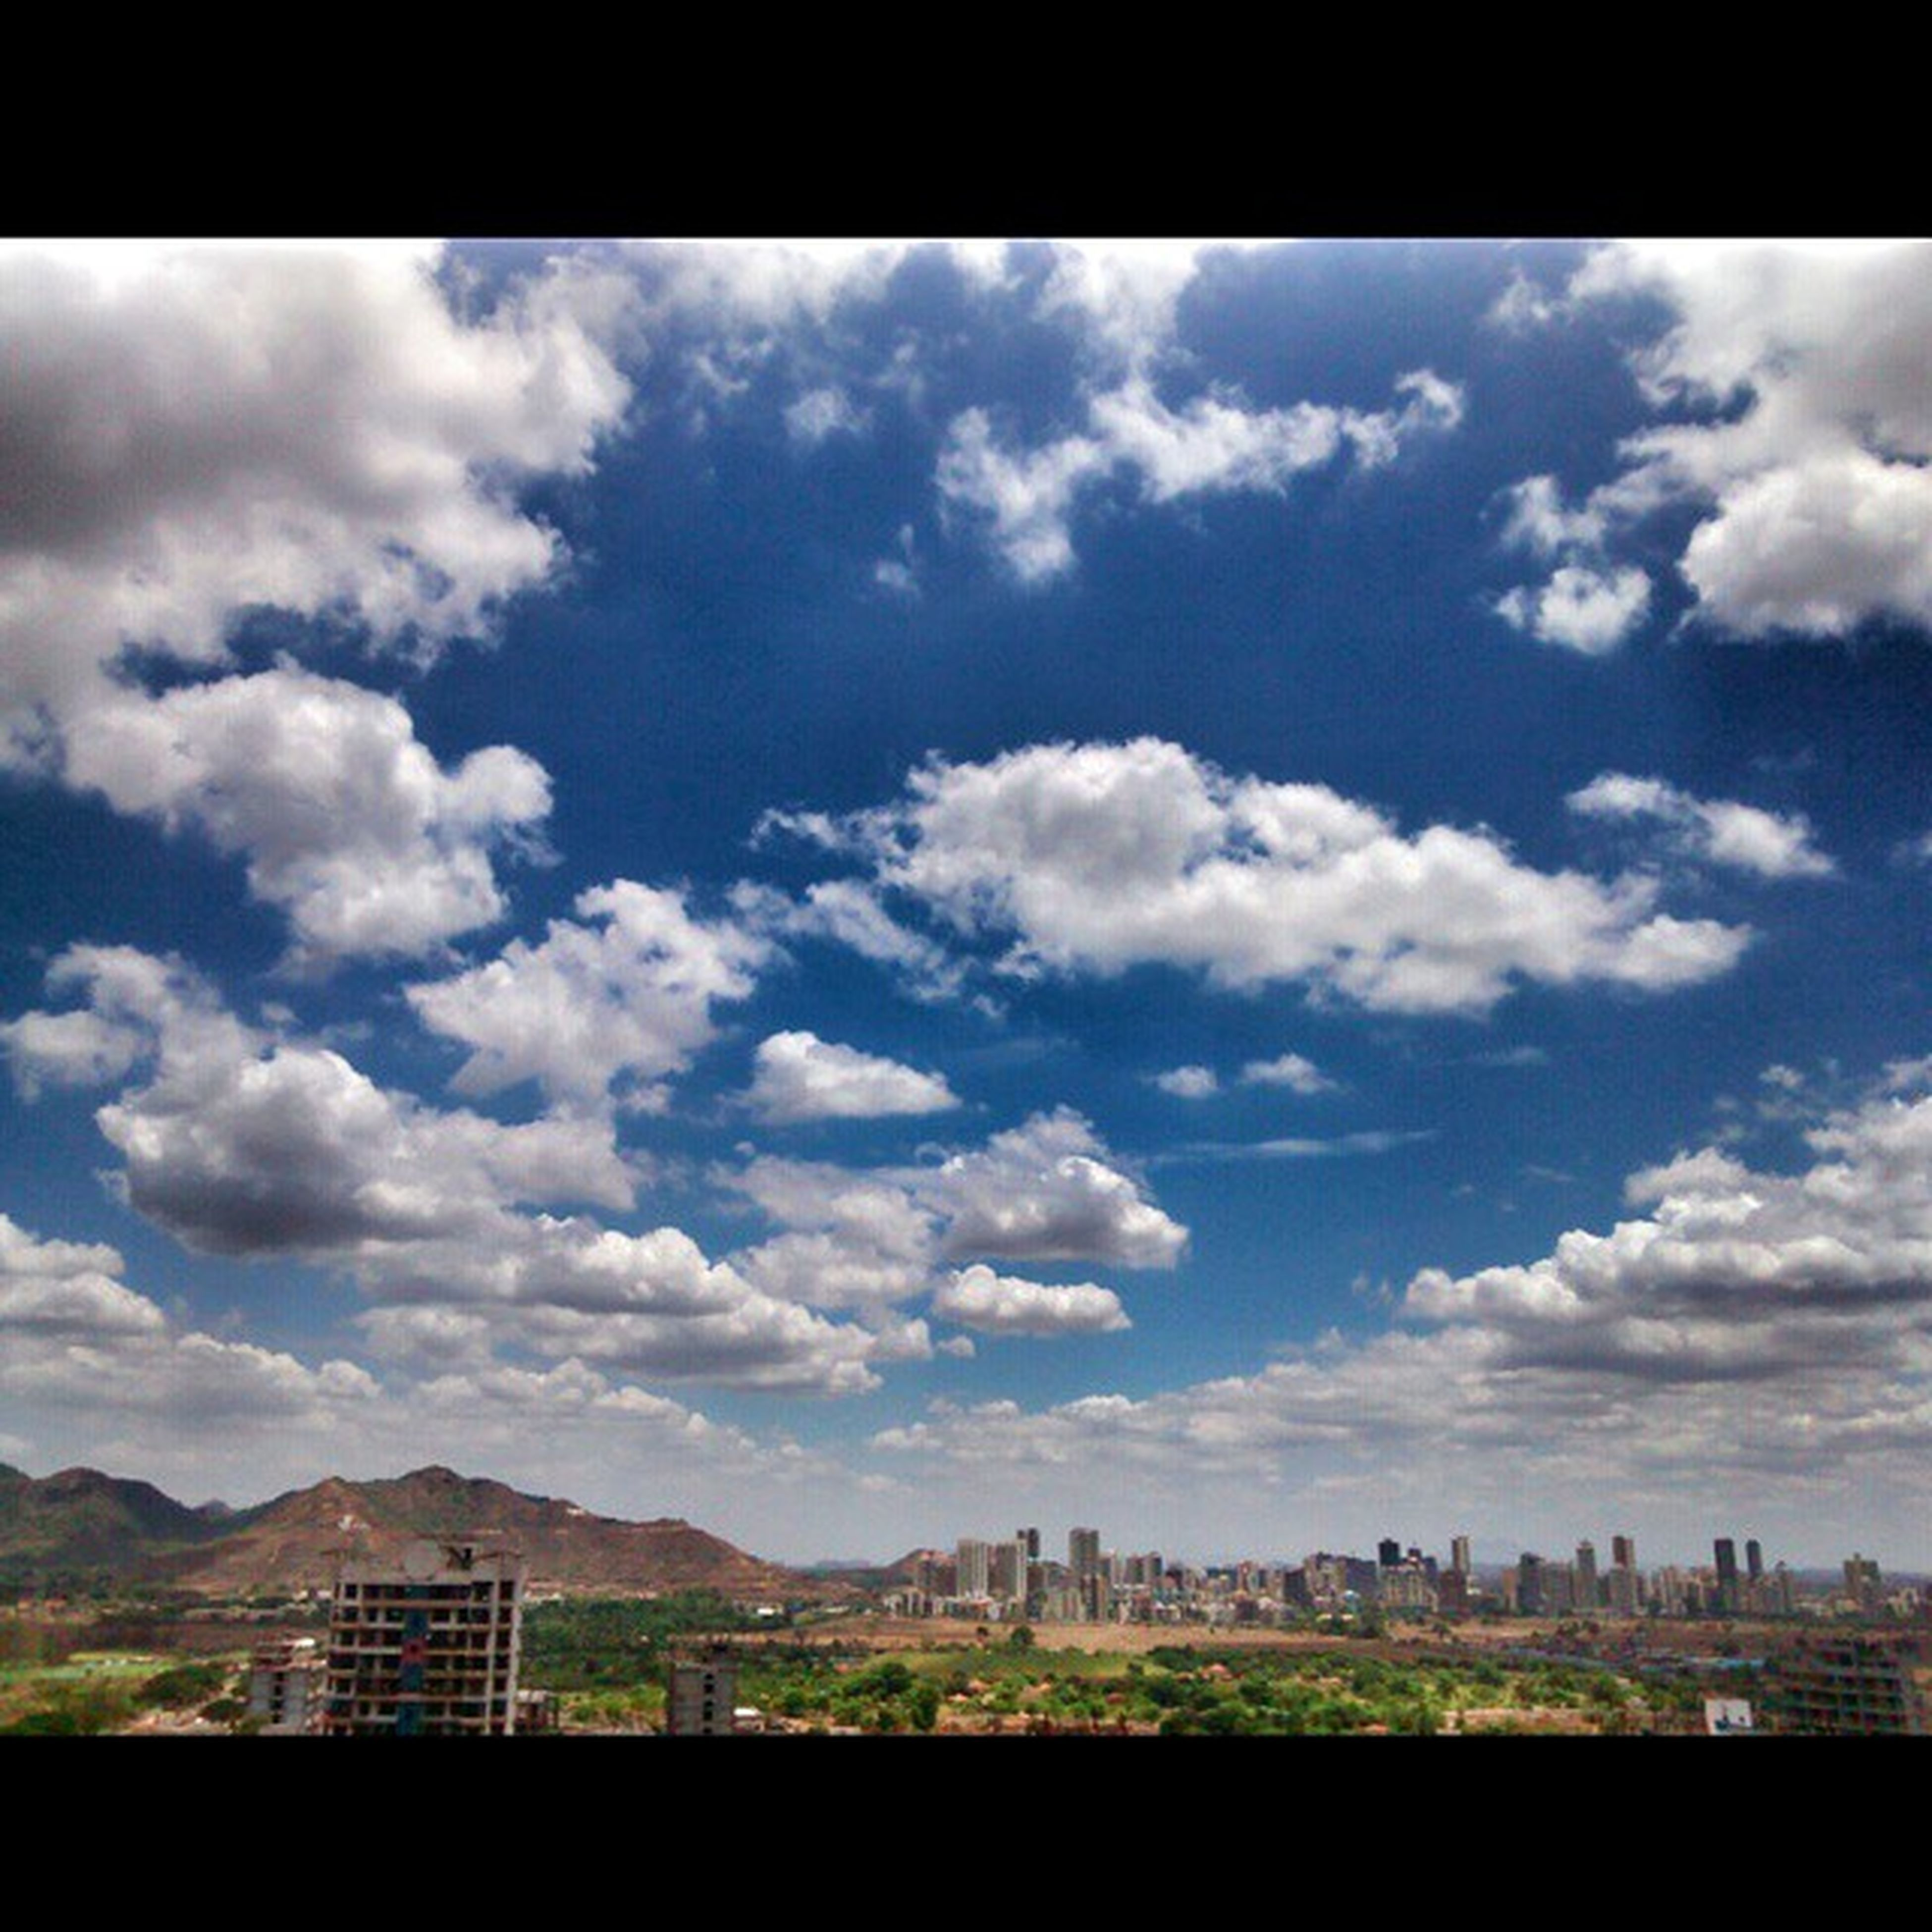 sky, architecture, building exterior, built structure, transfer print, cloud - sky, cloud, city, cloudy, cityscape, auto post production filter, day, mountain, landscape, outdoors, nature, residential building, no people, residential structure, residential district